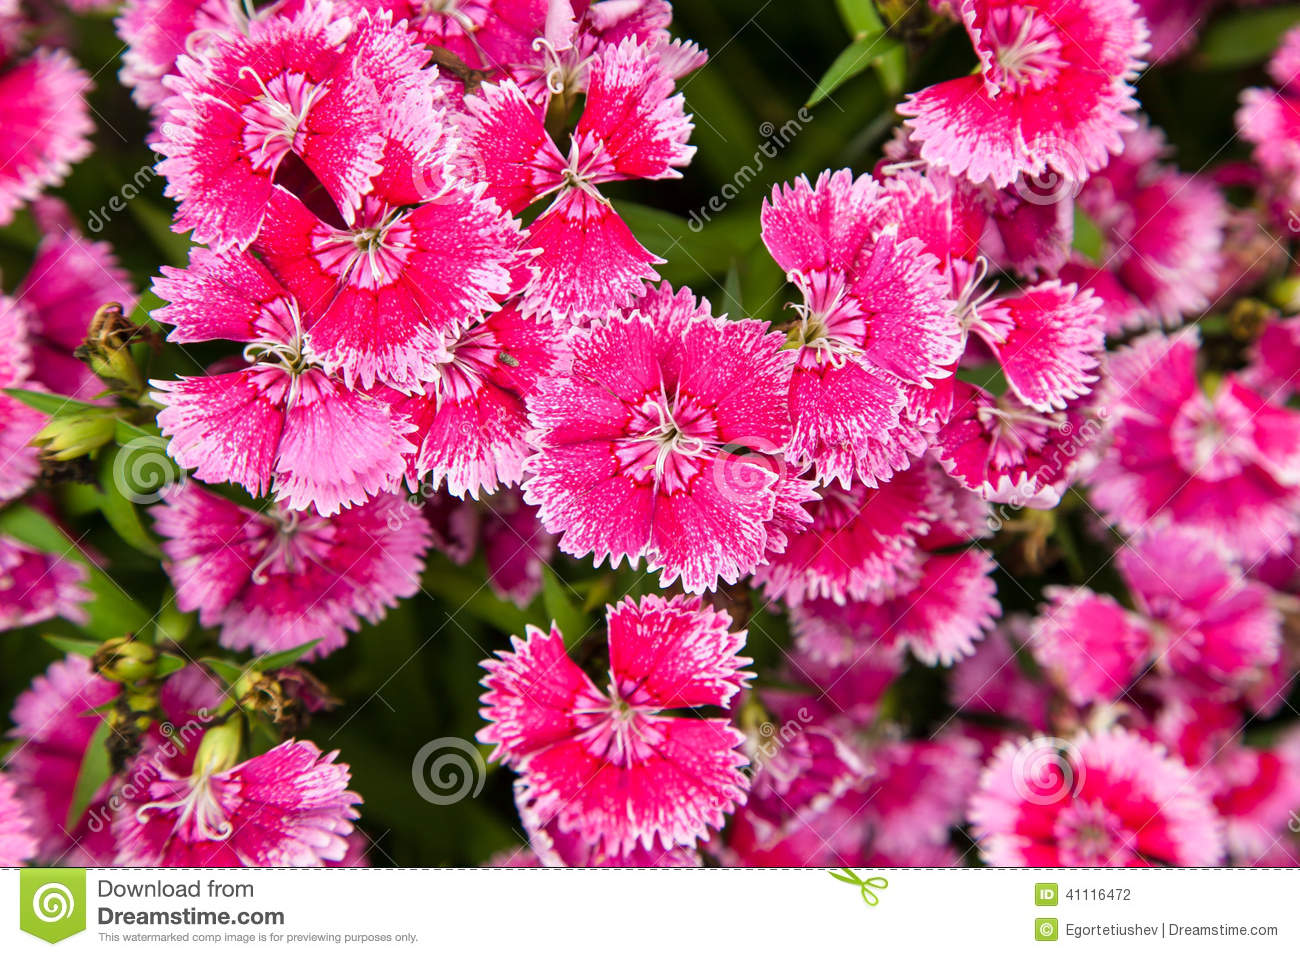 Small pink and white flowers images flower decoration ideas small pink and white flowers images flower decoration ideas small pink and white flowers image collections mightylinksfo